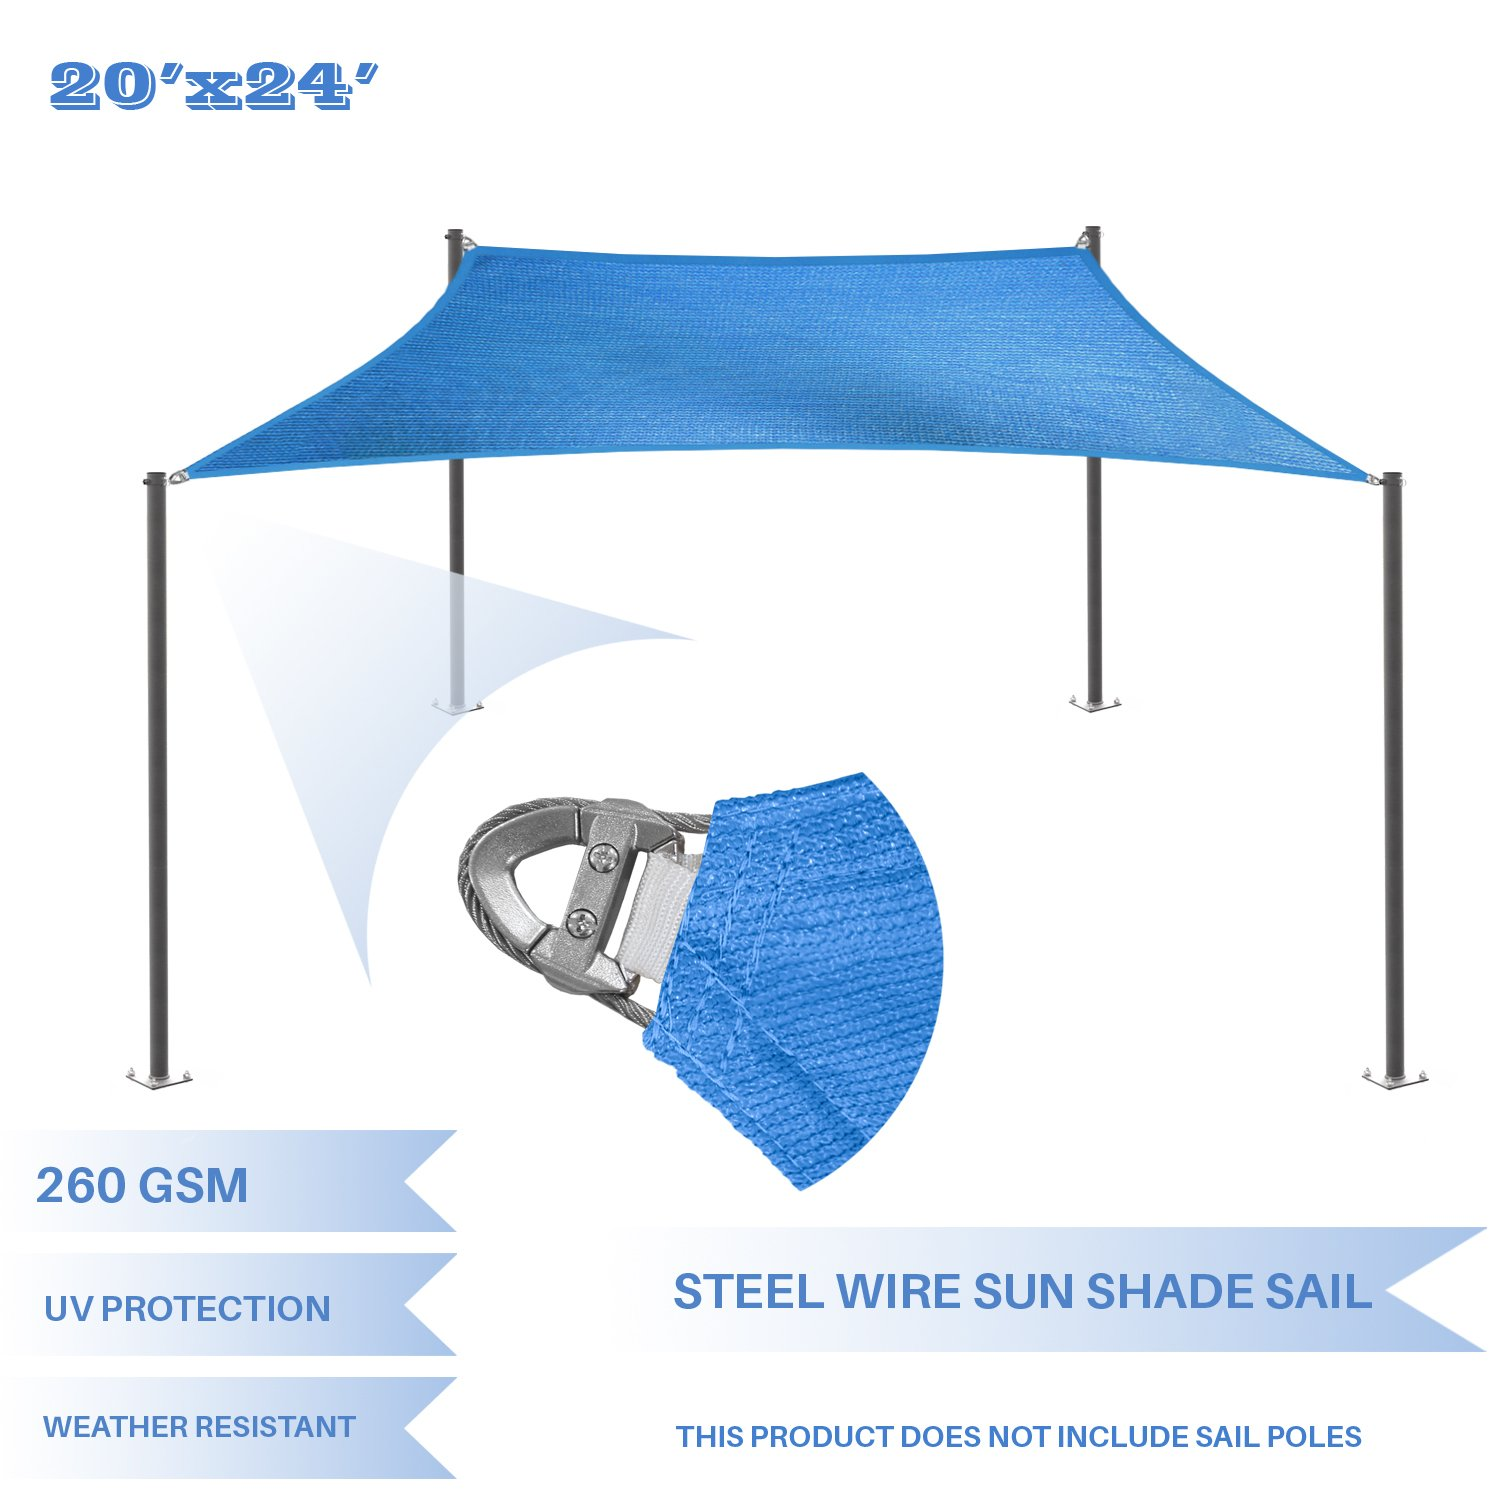 E&K Sunrise Reinforcement Large Sun Shade Sail 20' x 24' Rectangle Heavy Duty Strengthen Durable Outdoor Garden Canopy UV Block Fabric (260GSM)- 7 Year Warranty - Blue